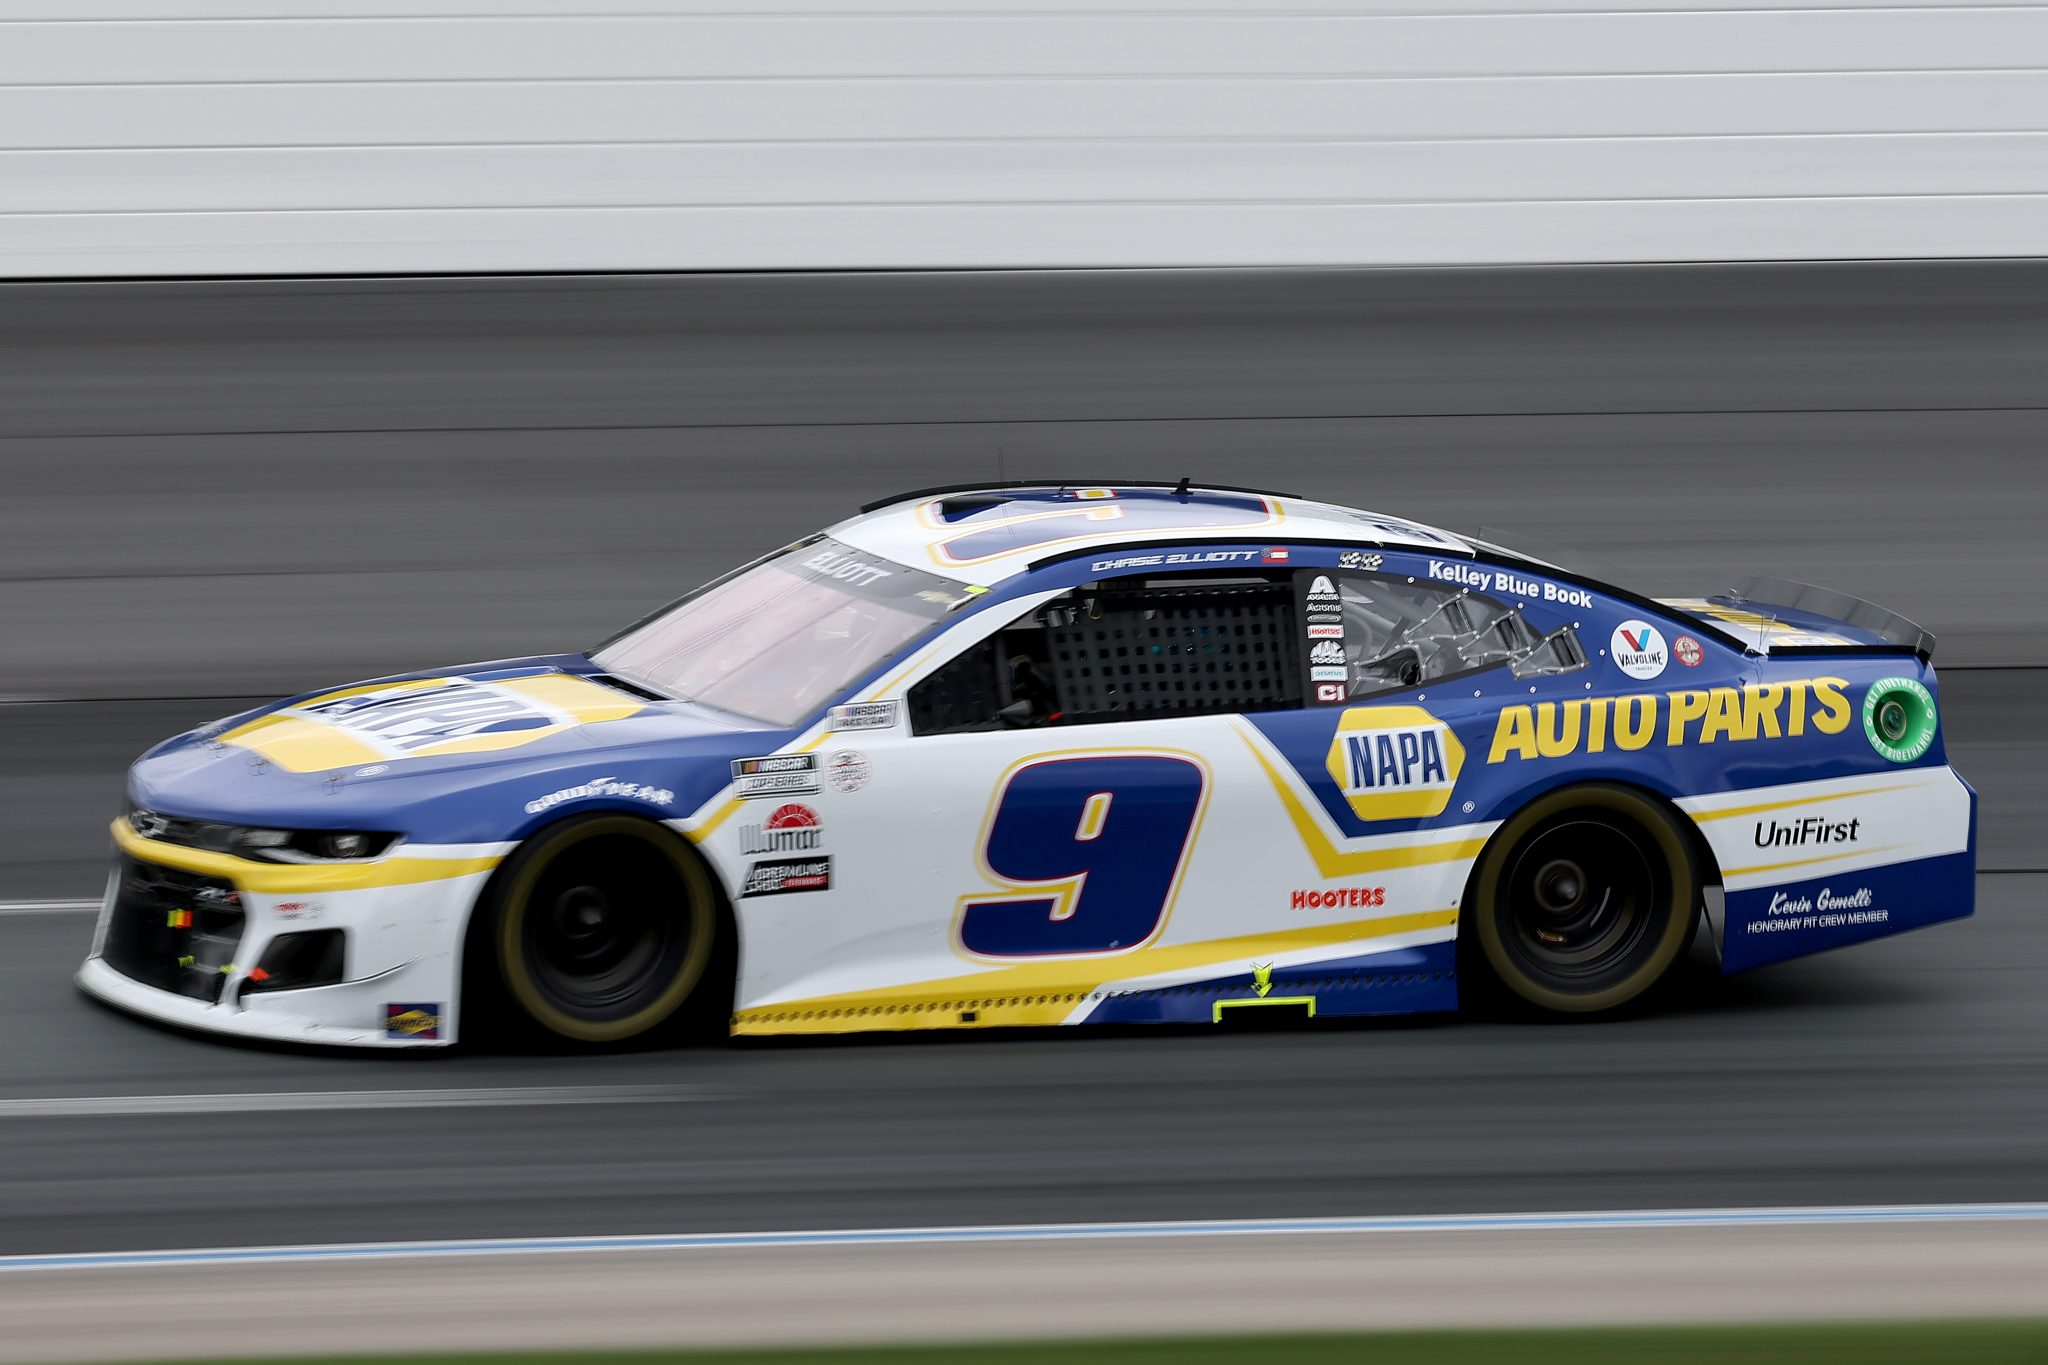 LOUDON, NEW HAMPSHIRE - JULY 18: Chase Elliott, driver of the #9 NAPA Auto Parts Chevrolet, drives during the NASCAR Cup Series Foxwoods Resort Casino 301 at New Hampshire Motor Speedway on July 18, 2021 in Loudon, New Hampshire. (Photo by James Gilbert/Getty Images)   Getty Images